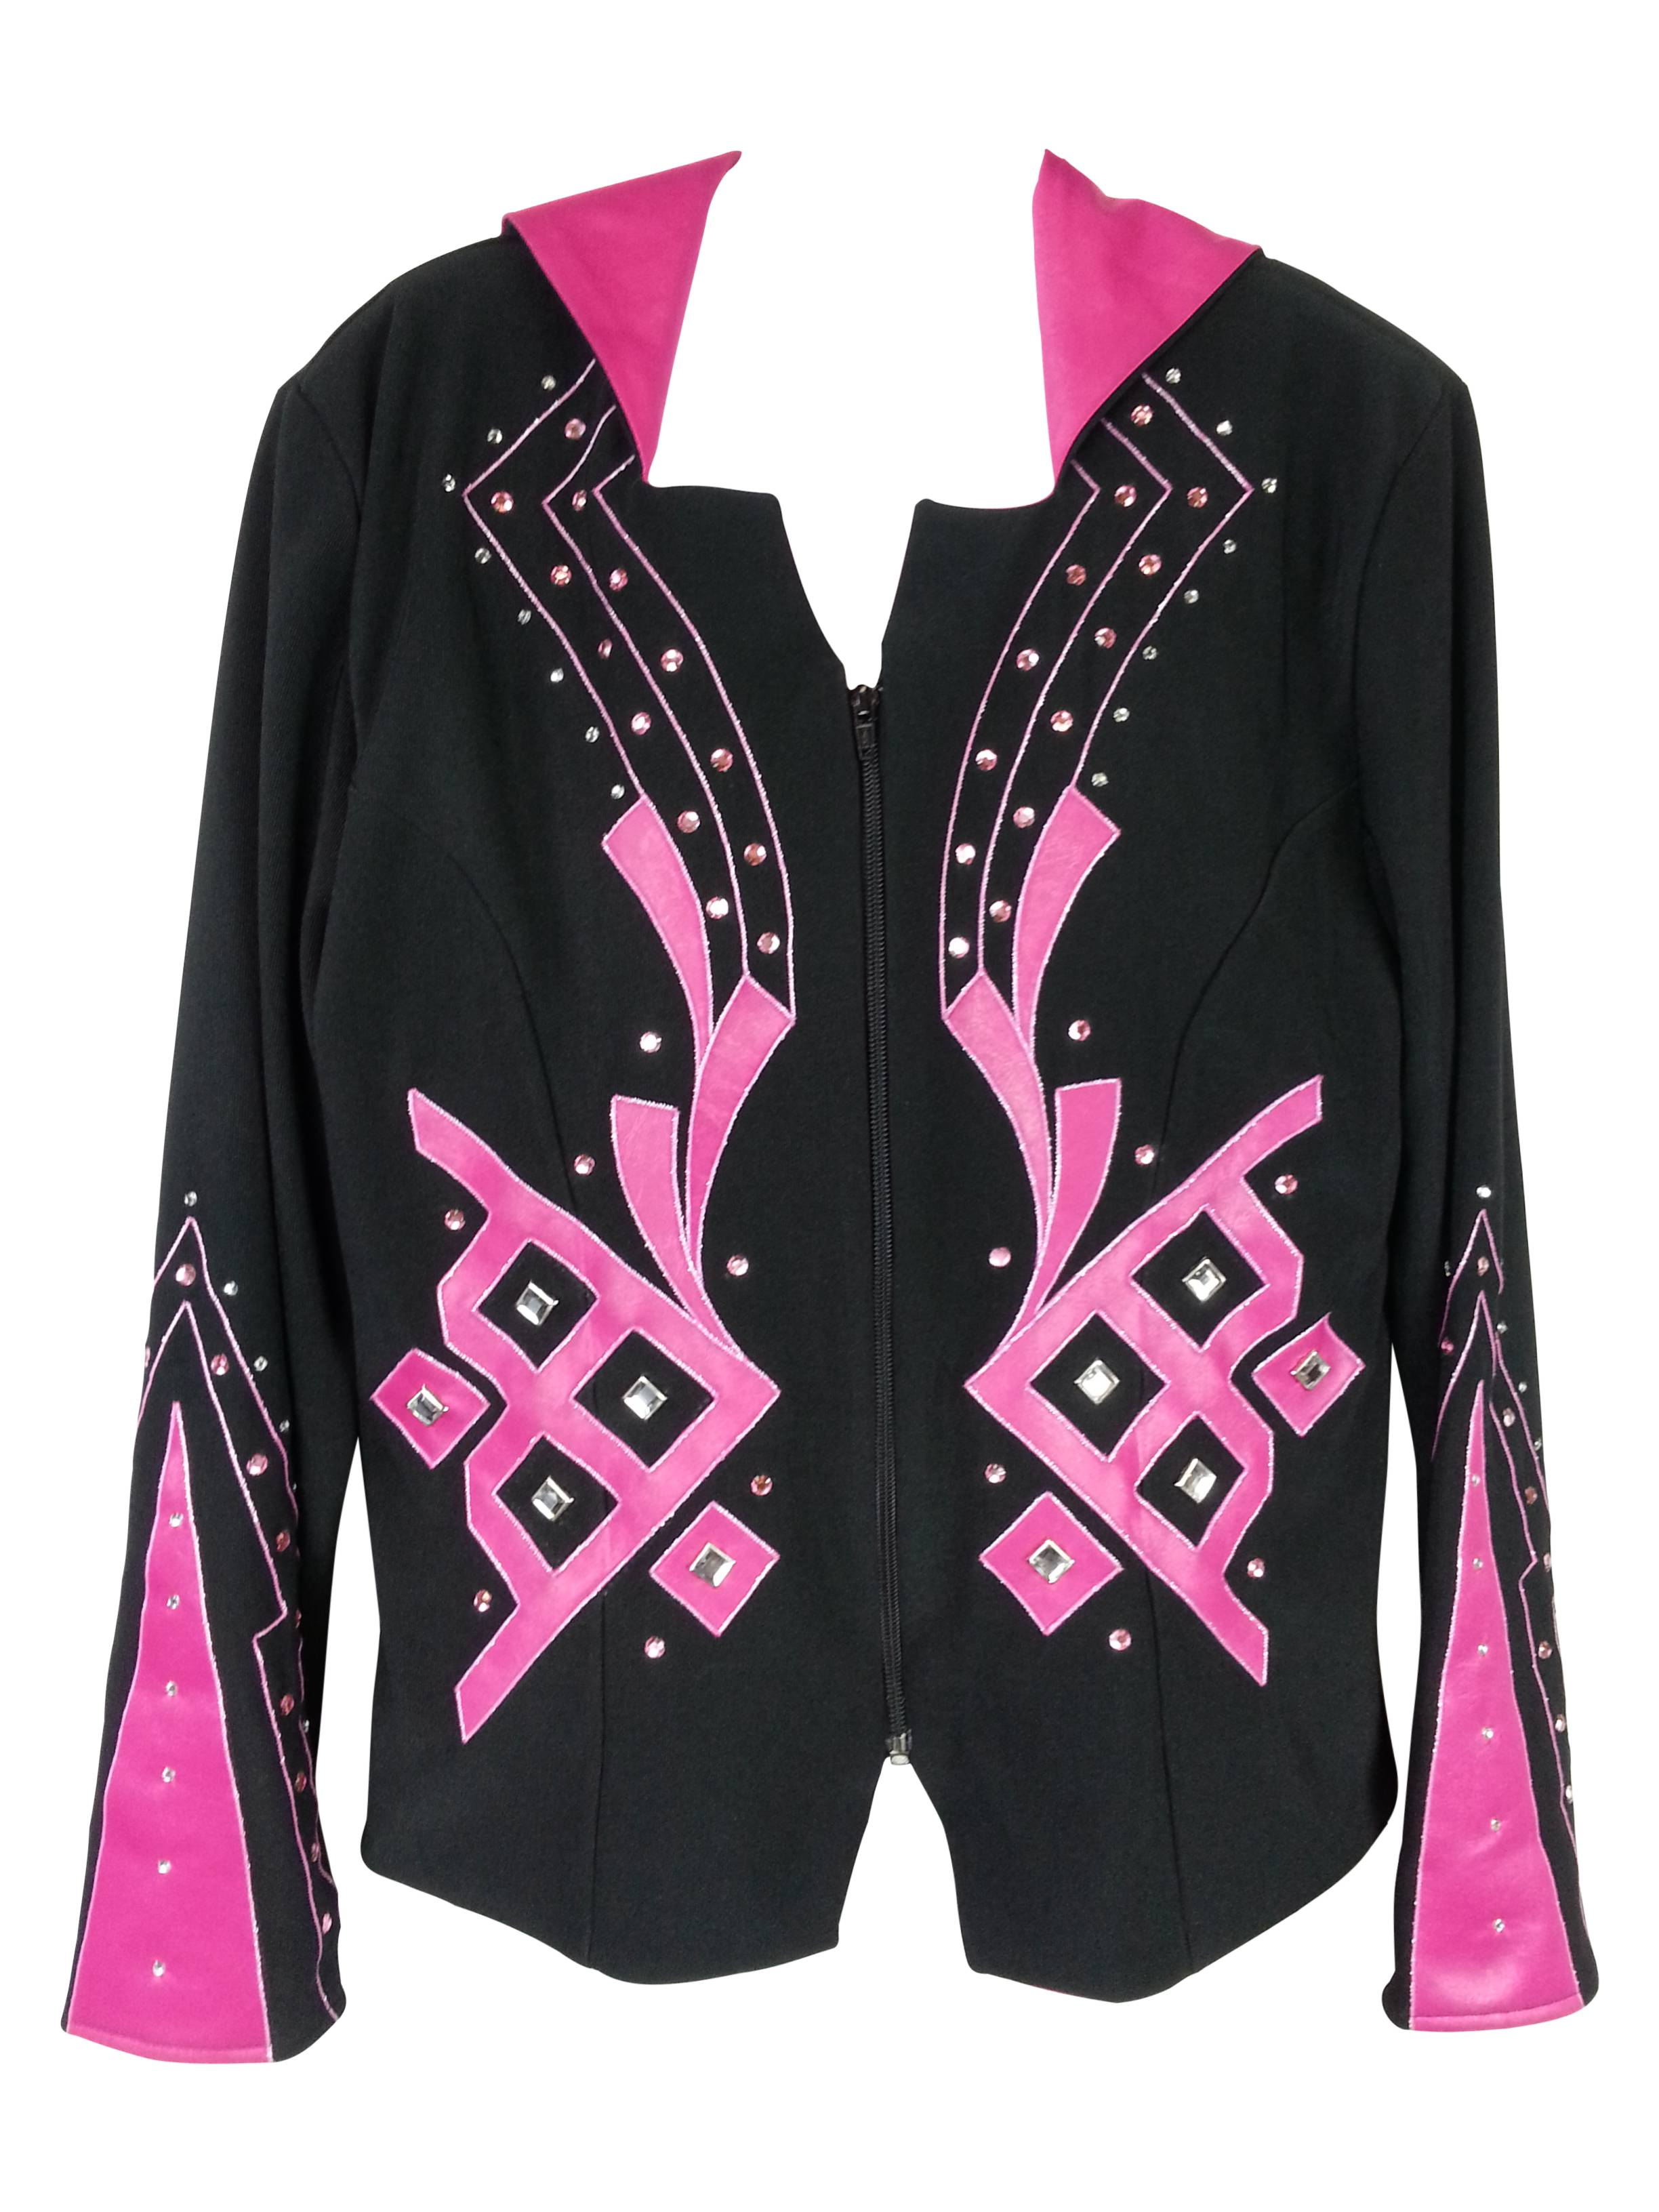 1849 Ladie's Show Jacket